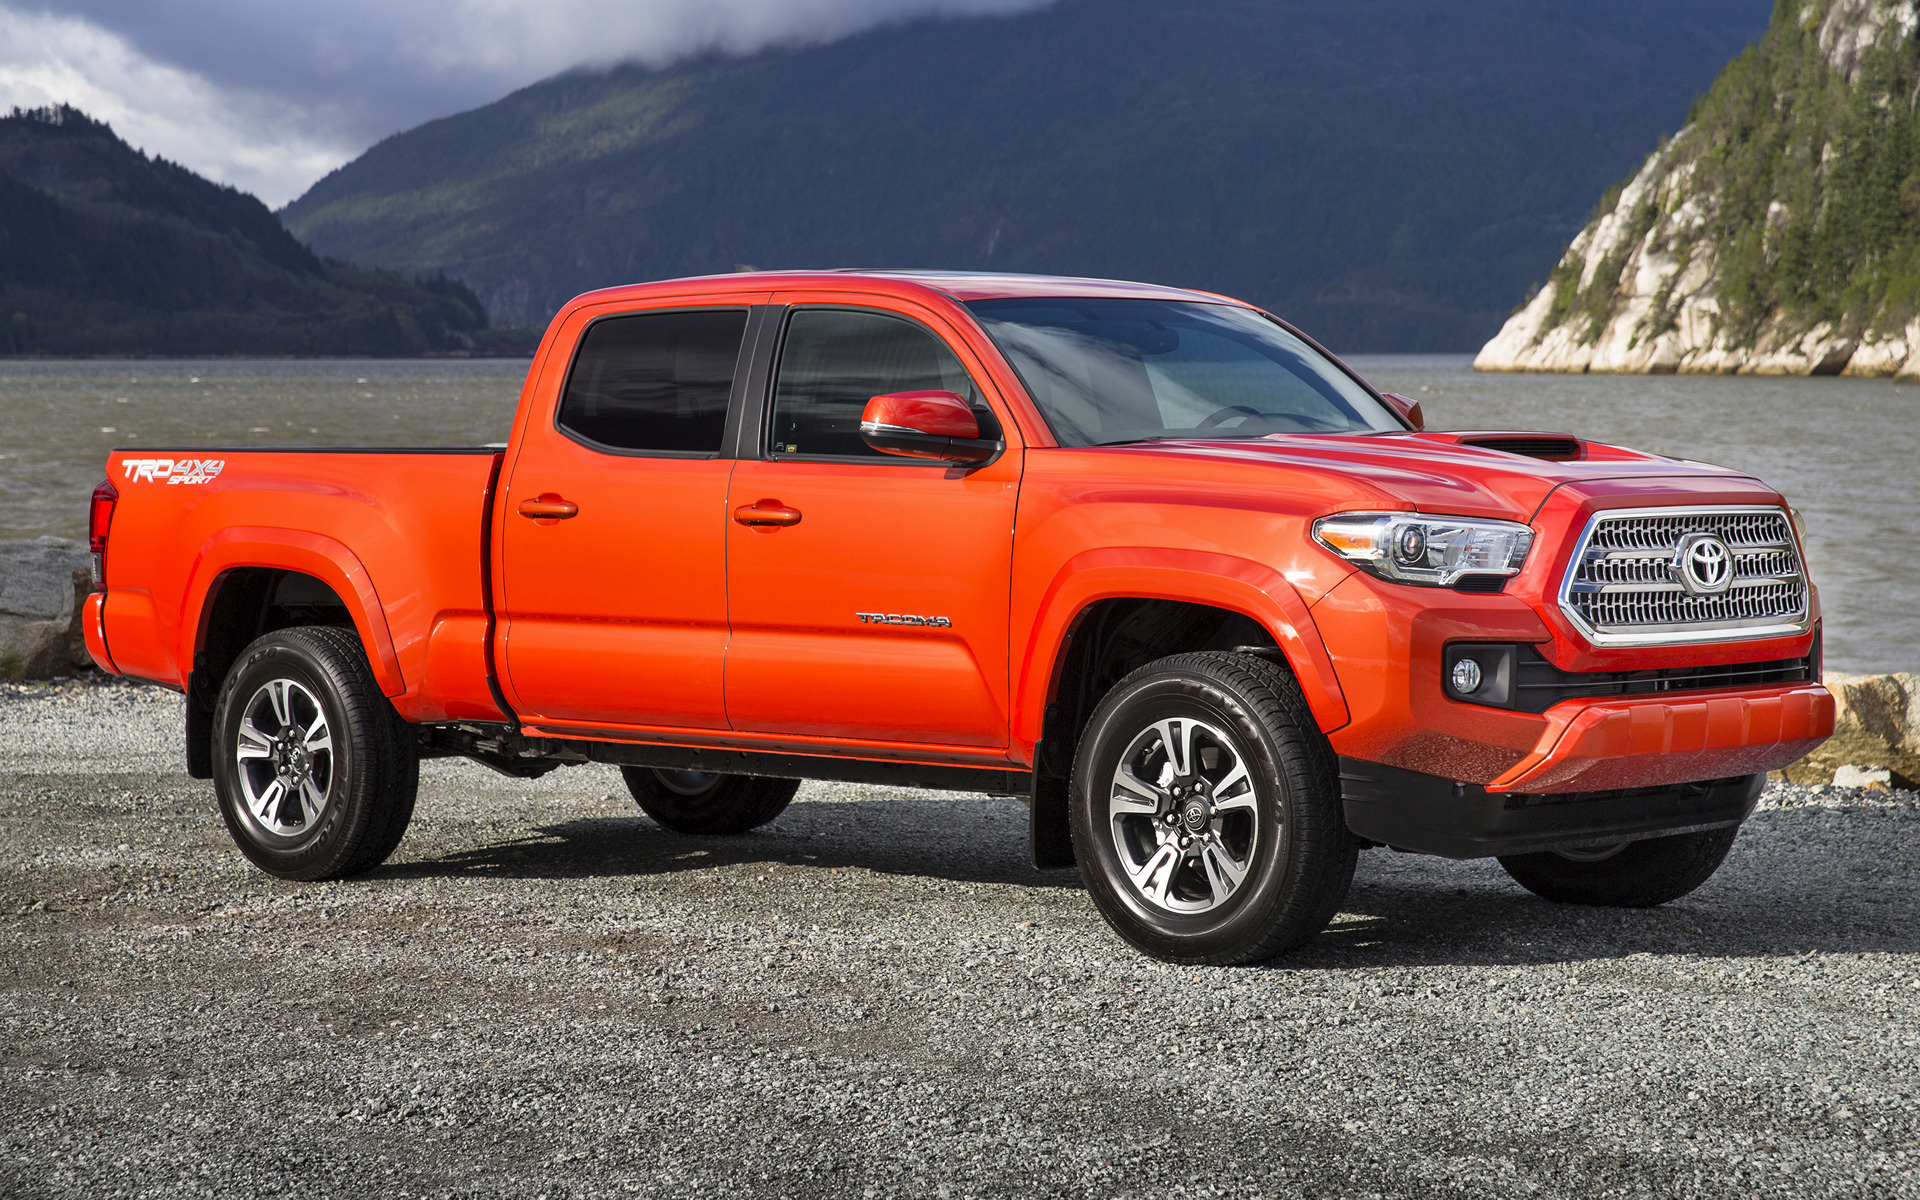 2018 Toyota Tacoma Trd Sport >> Toyota Tacoma TRD Sport Double Cab (2016) Wallpapers and HD Images - Car Pixel